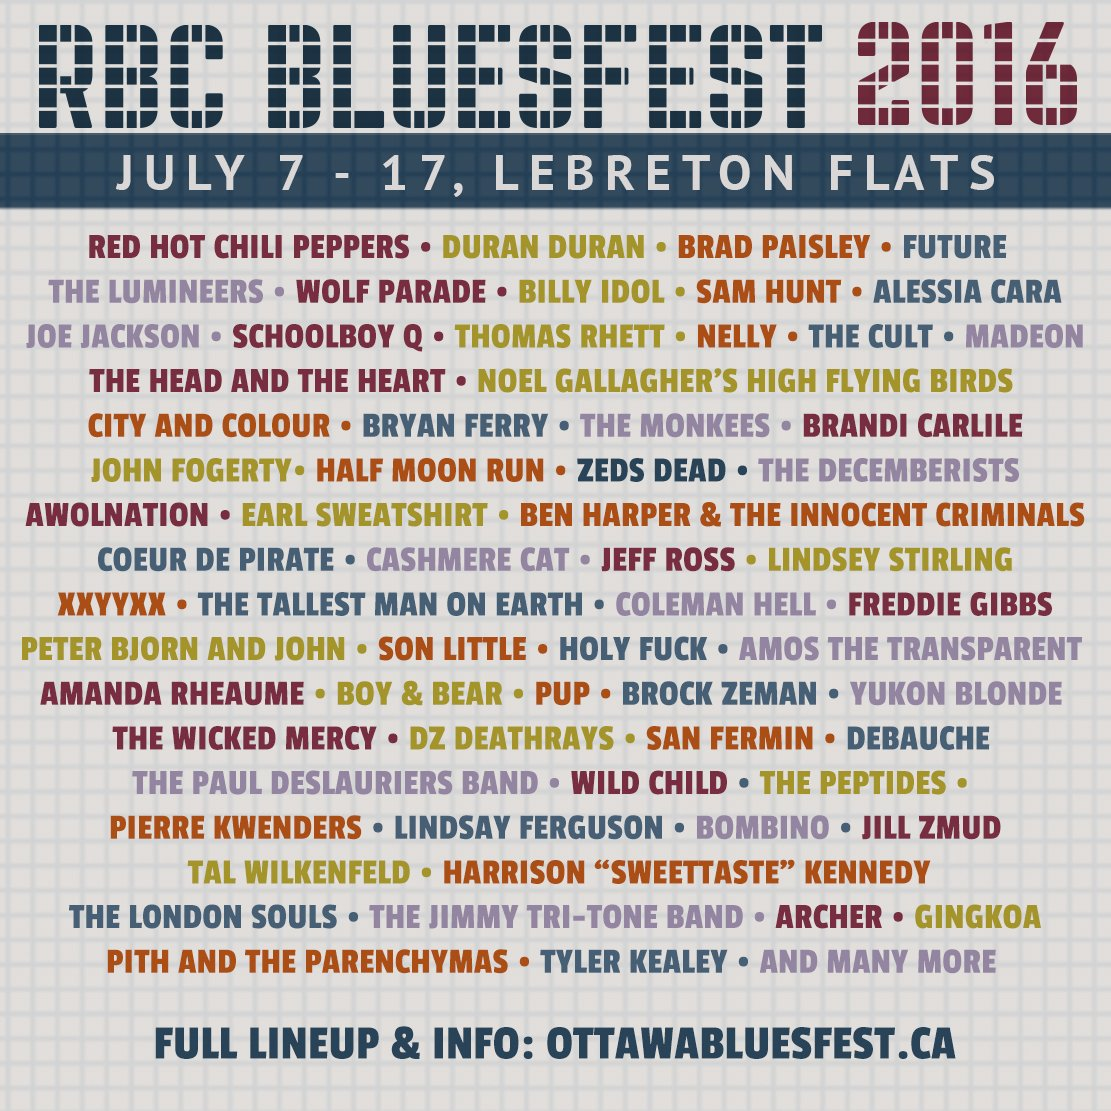 ICYMI: the #RBCBluesfest2016 lineup is out! ottawabluesfest.ca for the full list and more info https://t.co/bTXc0uOR4C